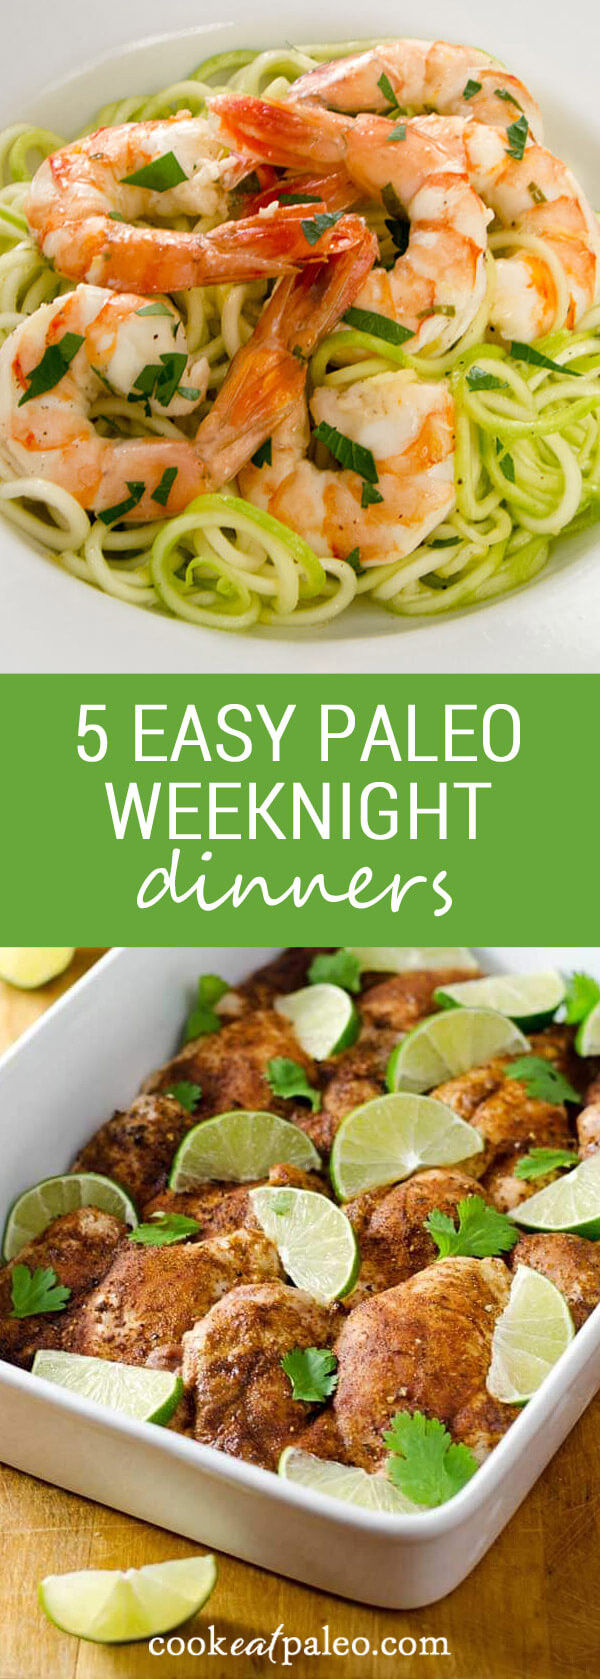 Easy Weeknight Dinners For Two  5 Easy Paleo Dinner Recipes for Busy Weeknights